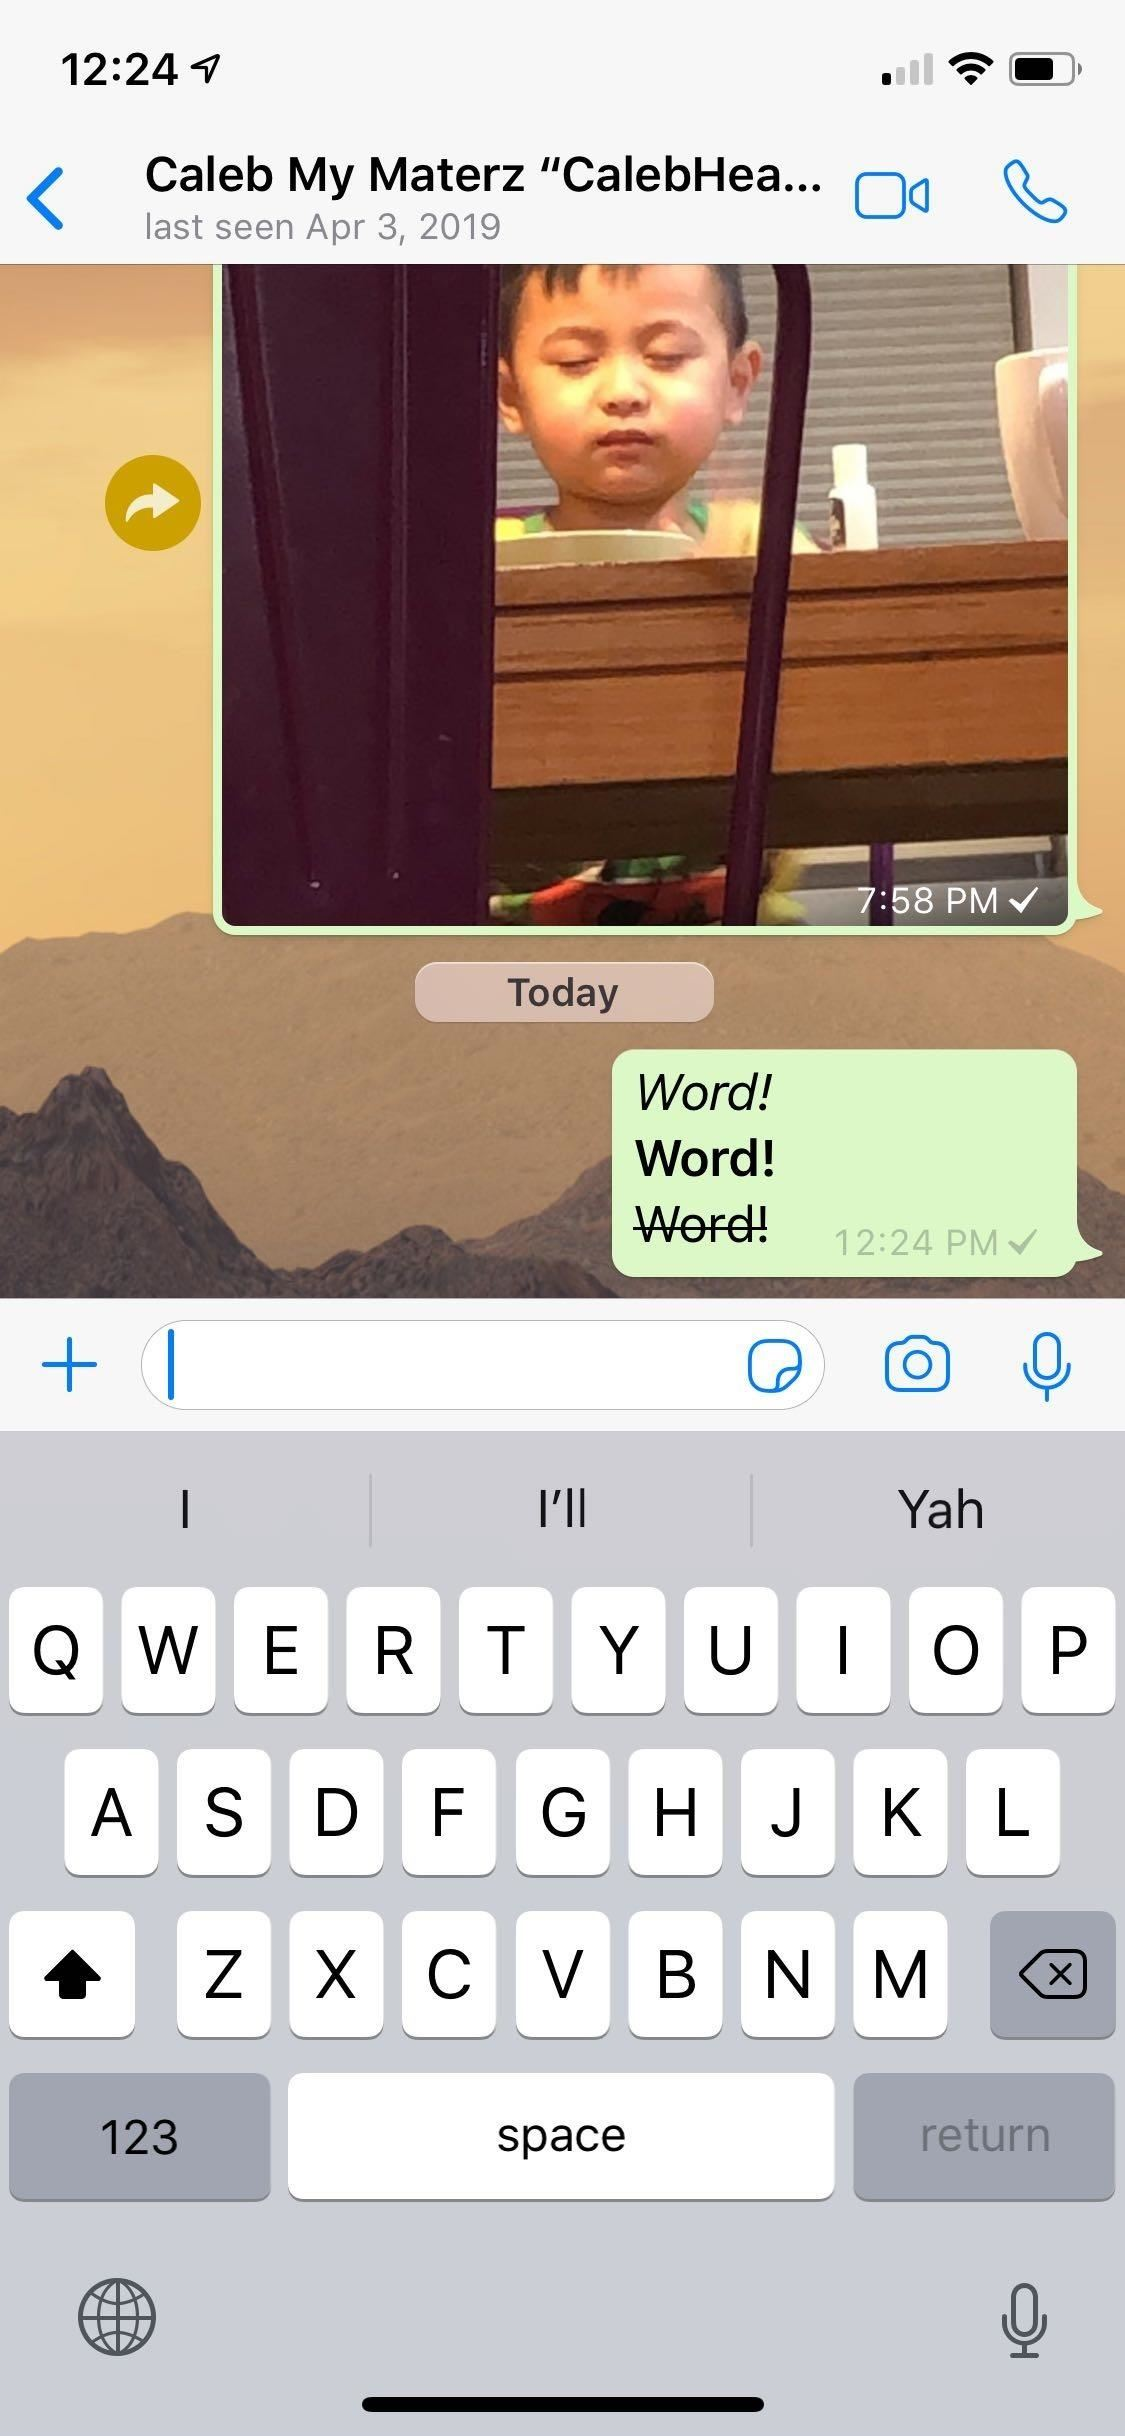 How to Format WhatsApp Messages with Italic, Bold, Strikethrough, or Monospaced Text for Customized Chats